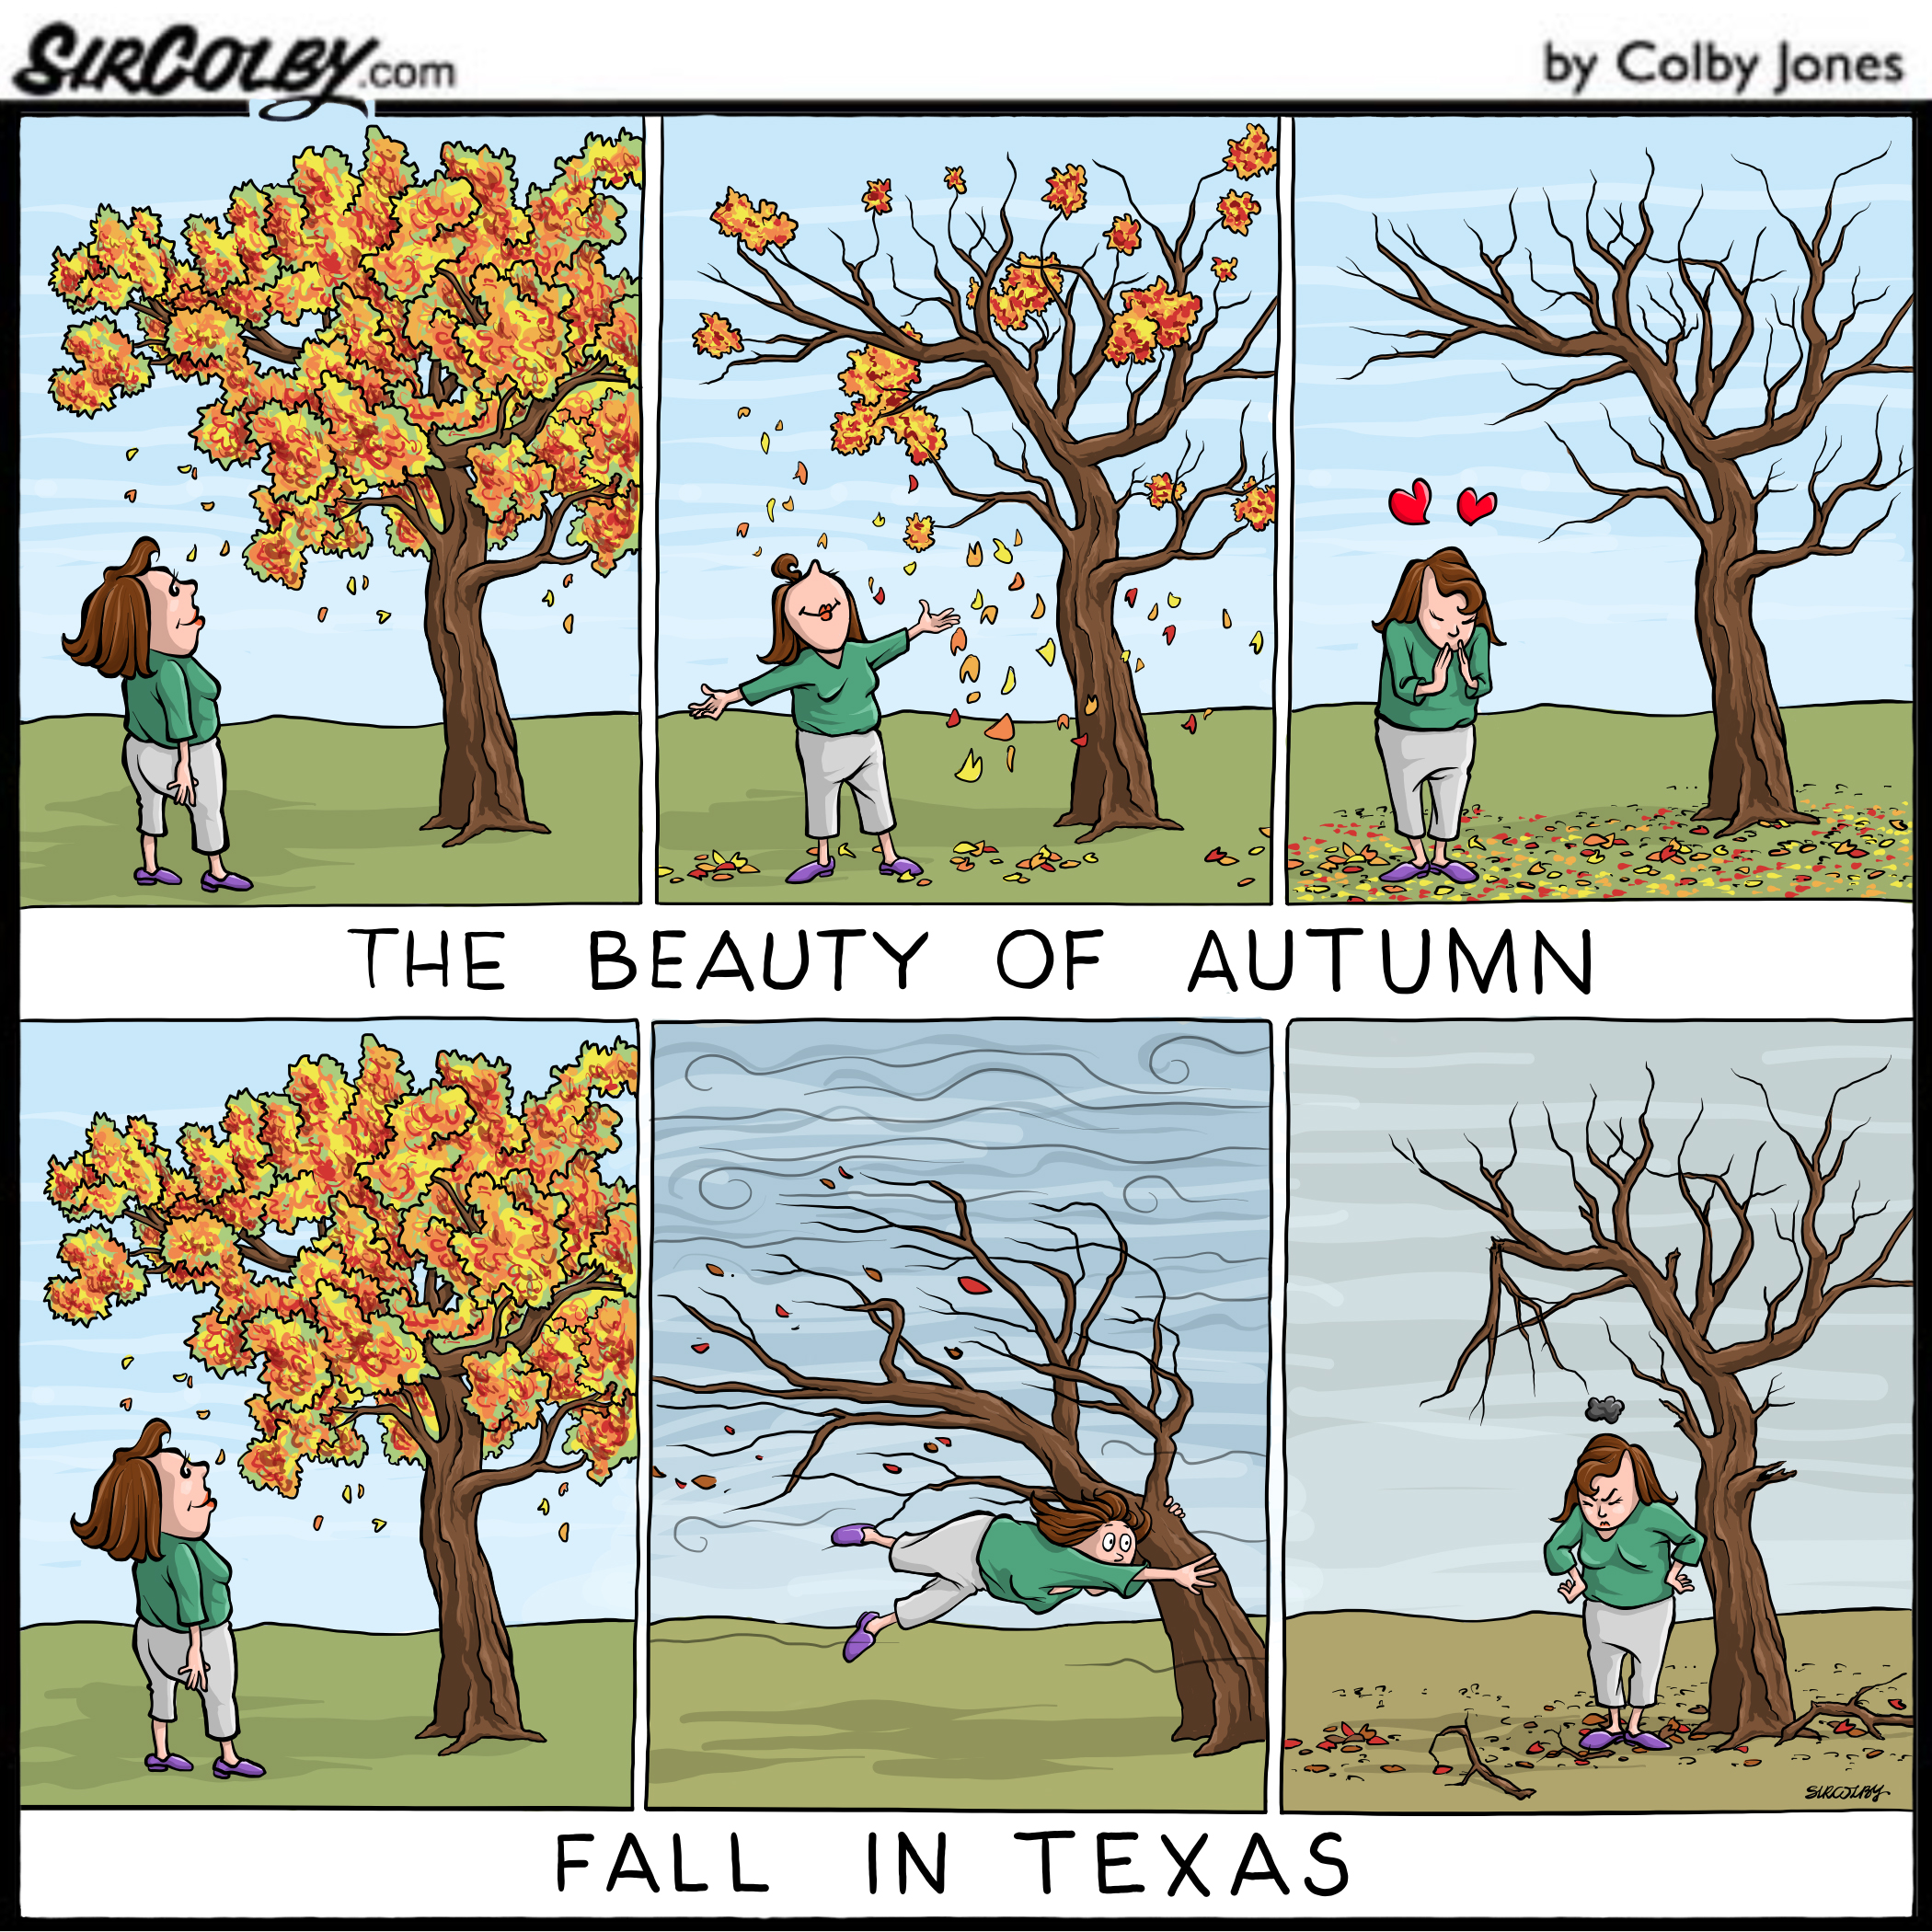 Fall in Texas